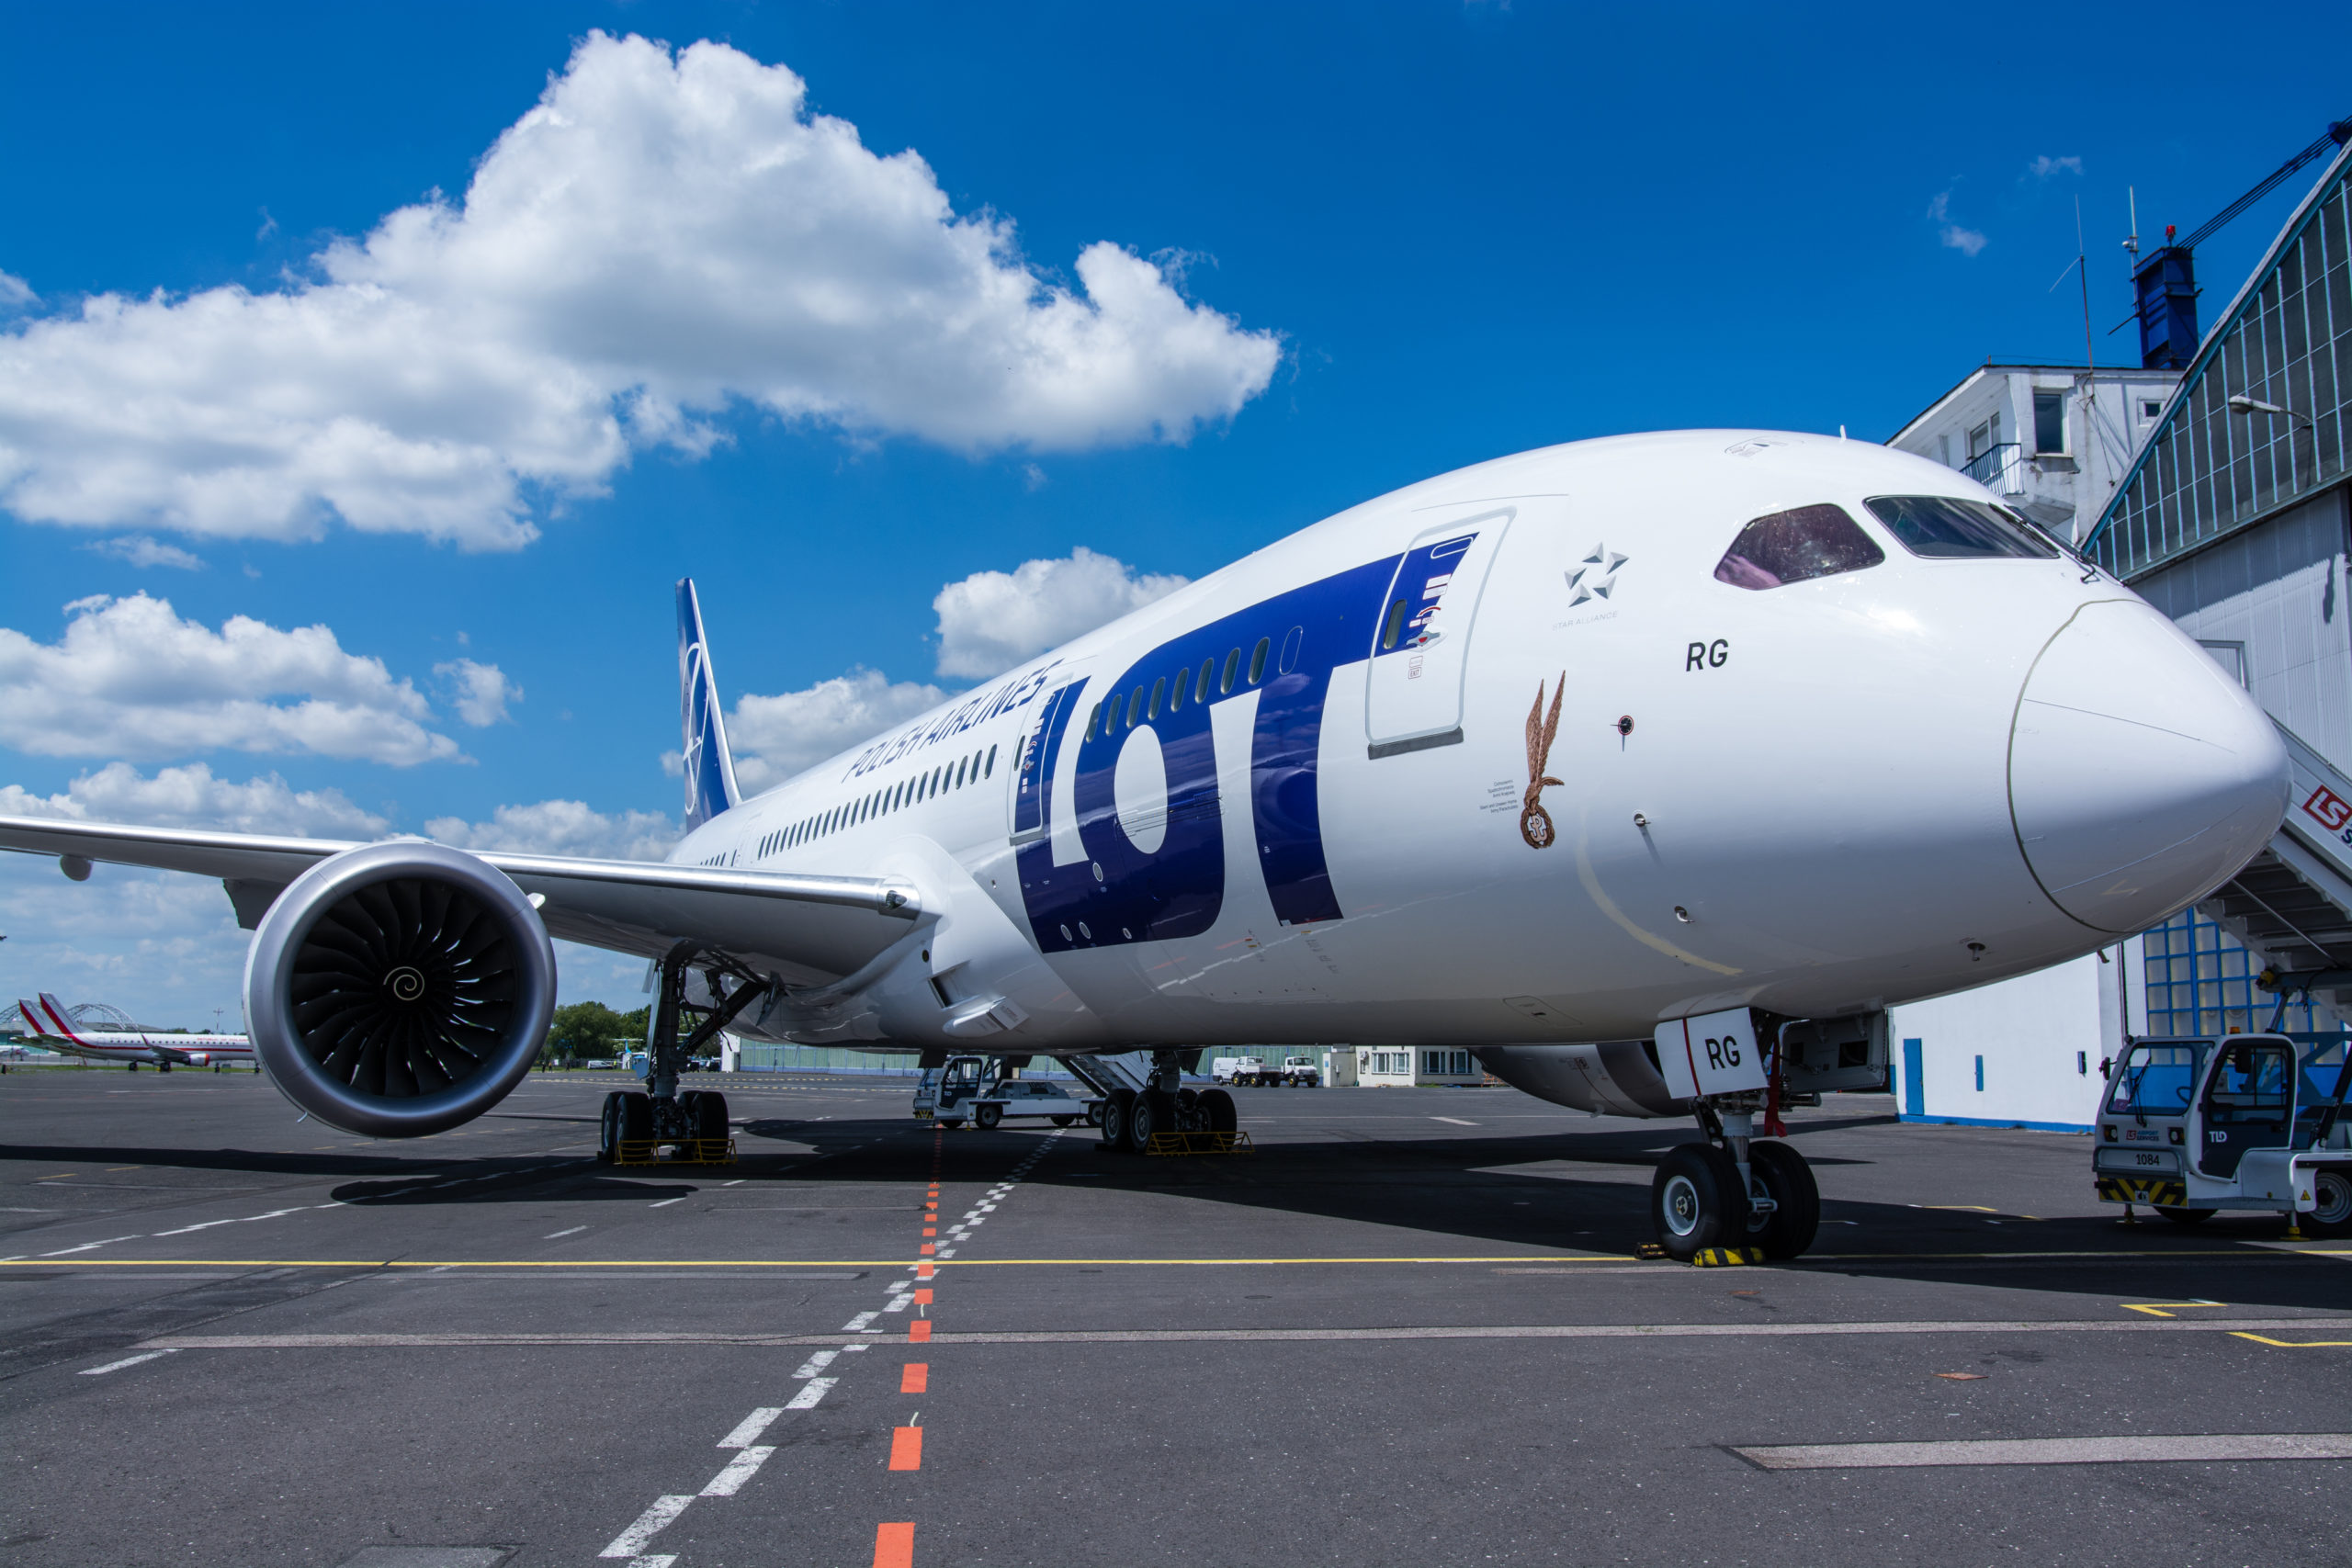 Poland grounds all domestic flights